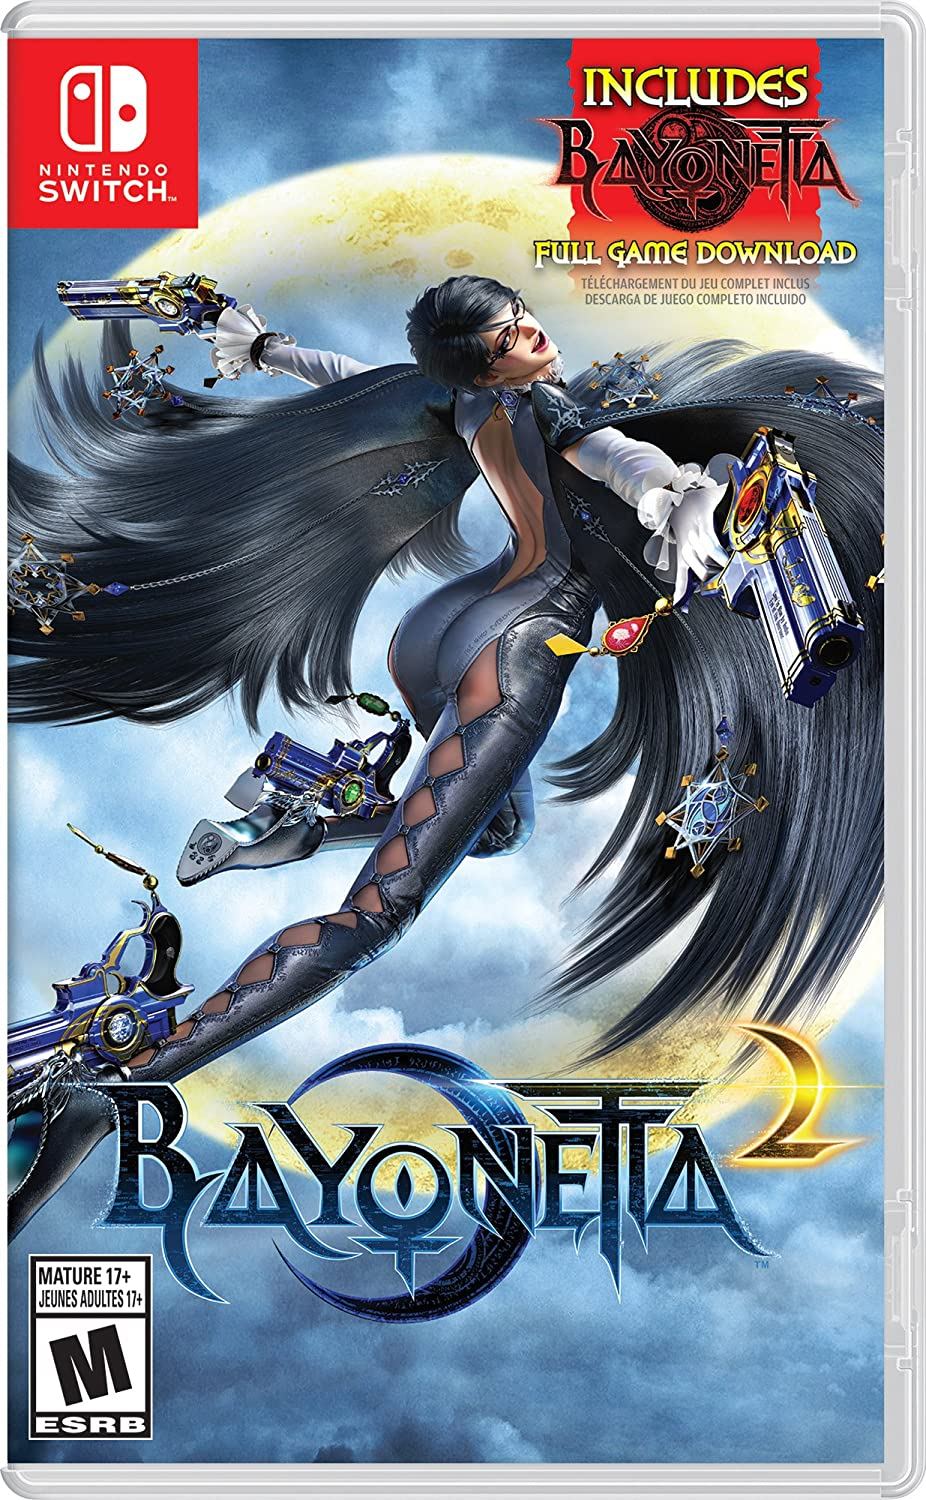 Bayonetta 2 (Physical Game Card) + Bayonetta 2 (Digital Download) - Nintendo Switch